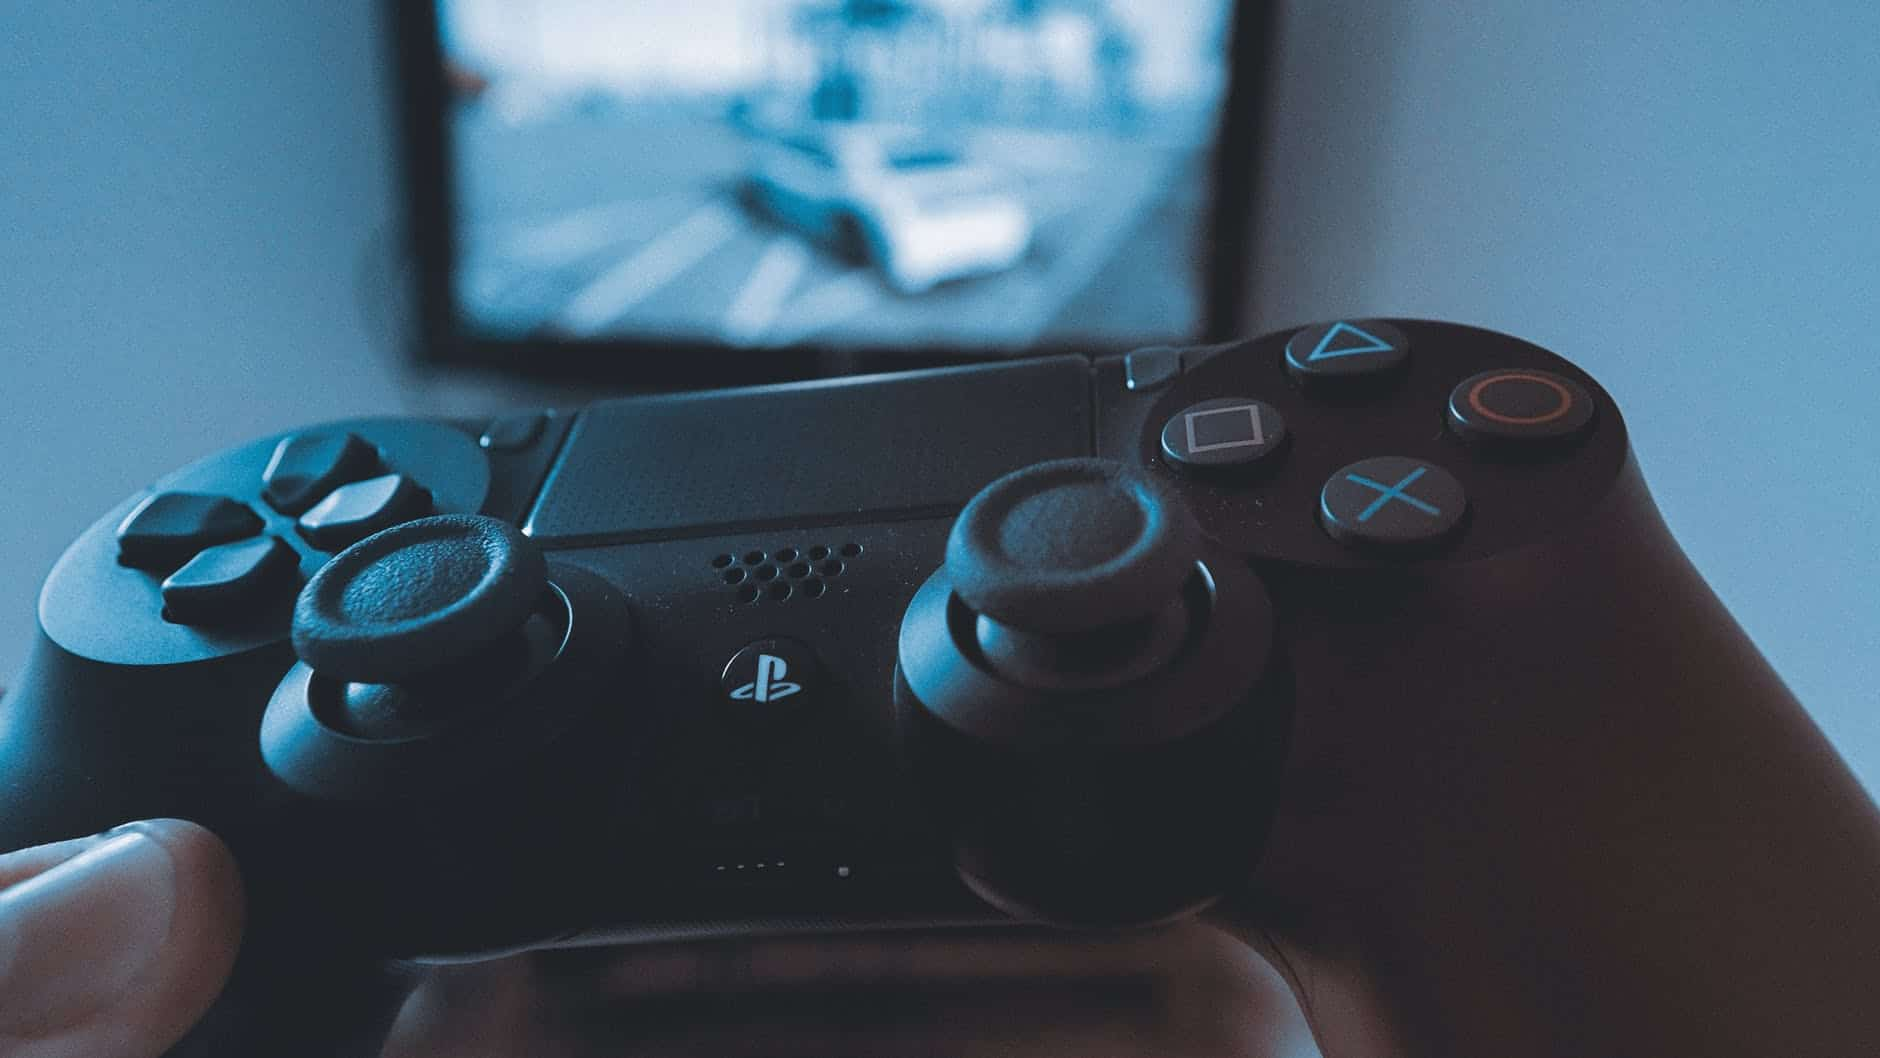 Hobby In Gaming- Being A Good Gamer